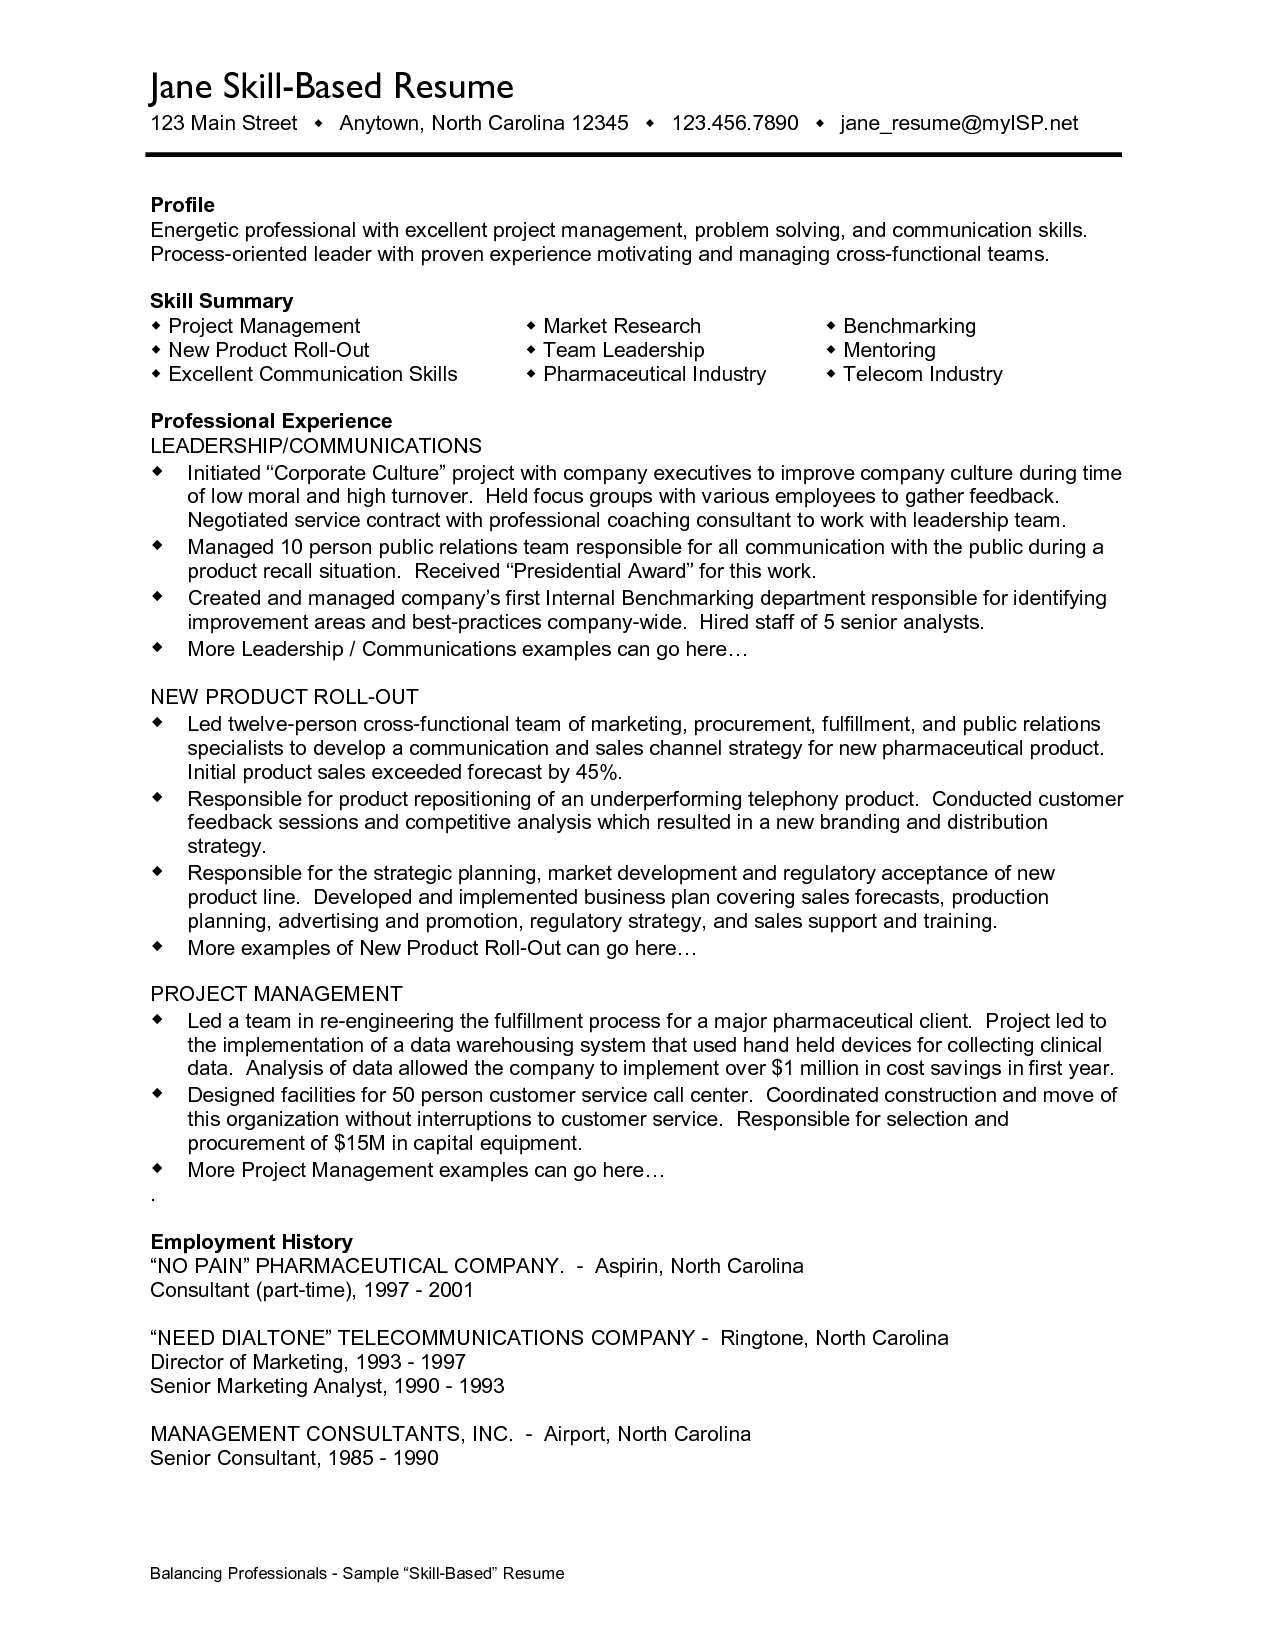 What To Put On A Resume For Skills Cool Job Resume Communication Skills  Httpwwwresumecareerjob 2018